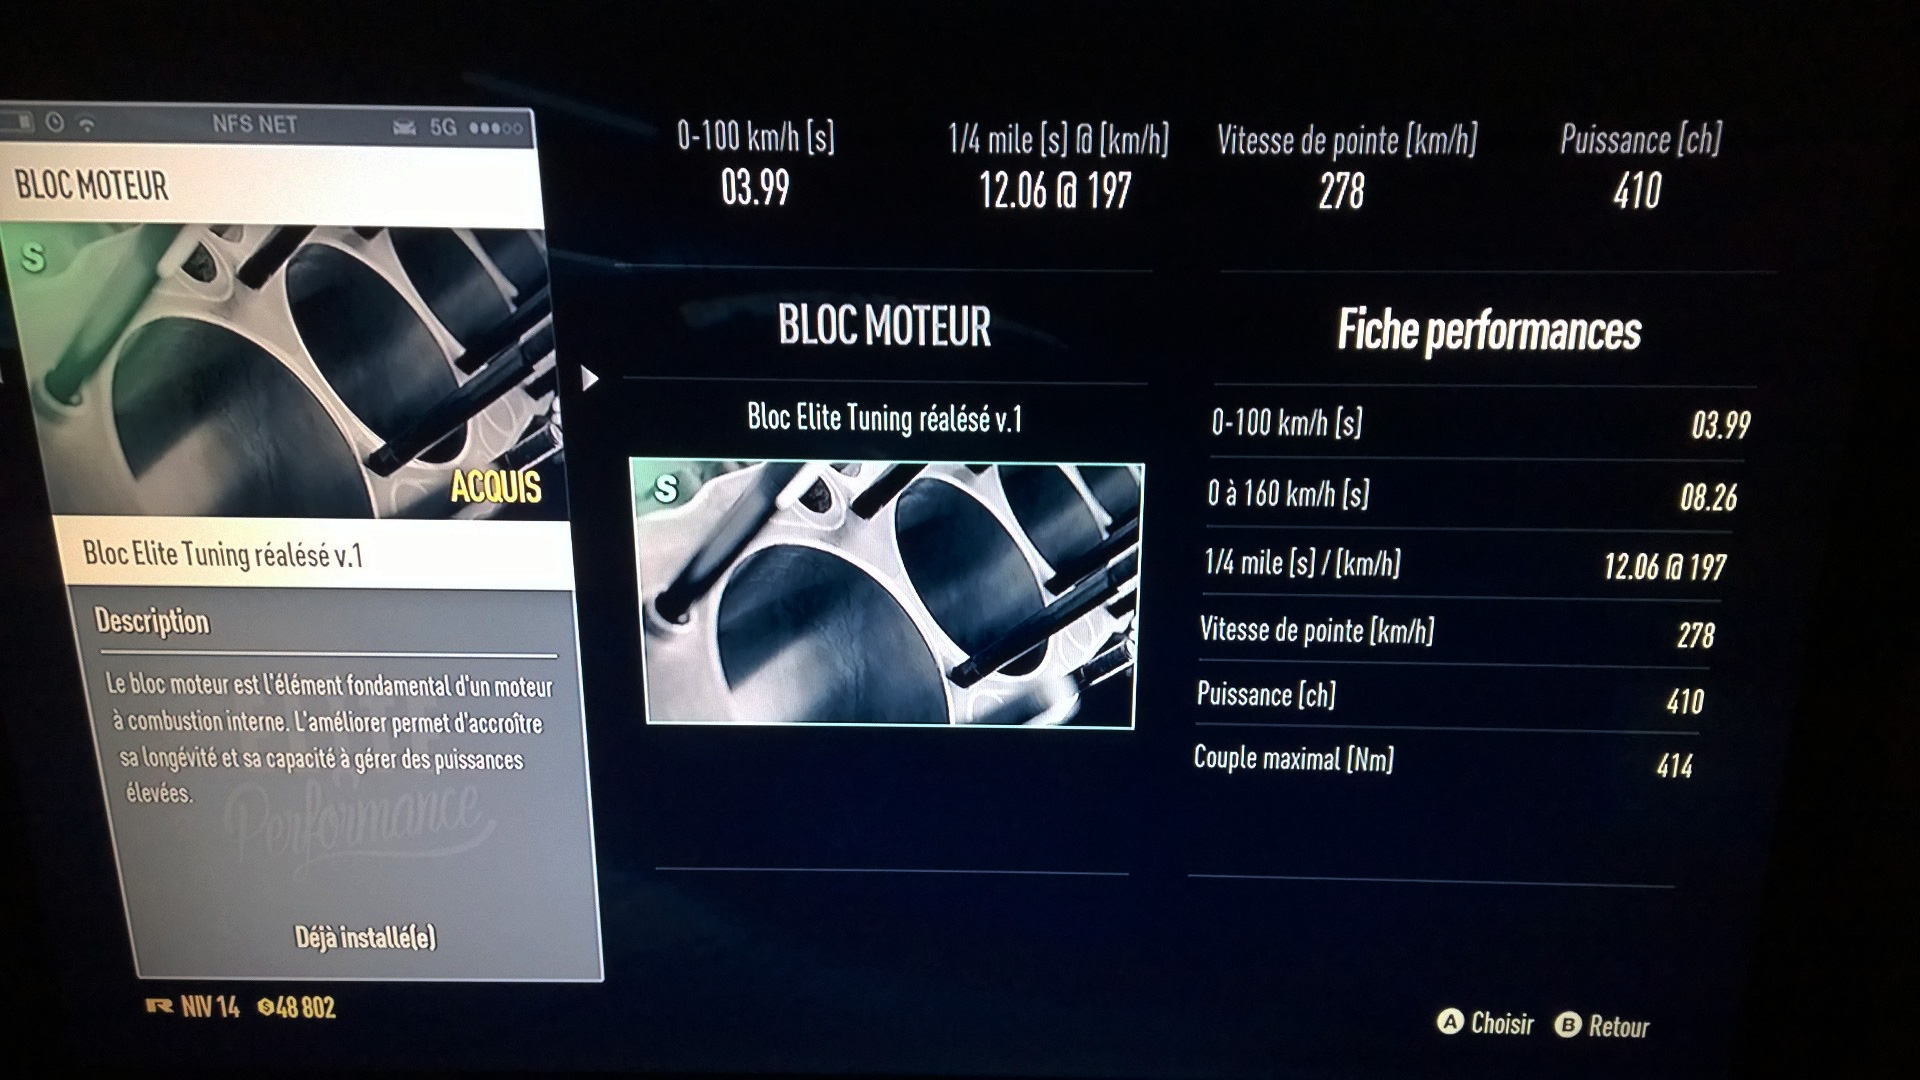 Need for Speed - screen photo - BRZ amélioration bloc moteur / performance parts: engine